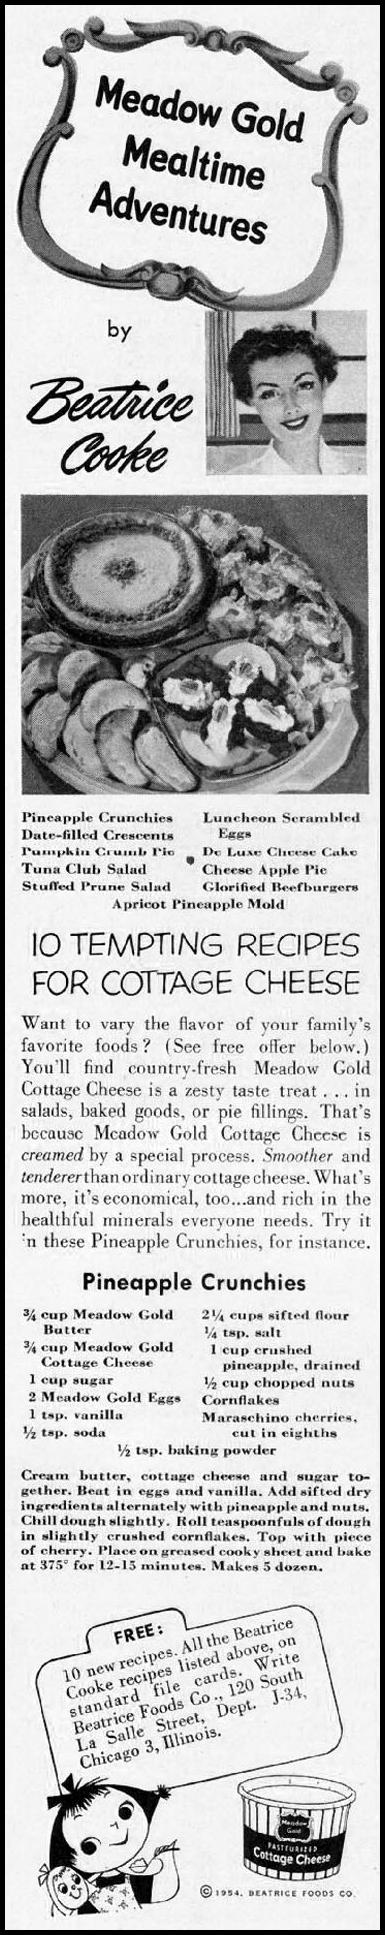 MEADOW GOLD COTTAGE CHEESE LADIES' HOME JOURNAL 03/01/1954 p. 167